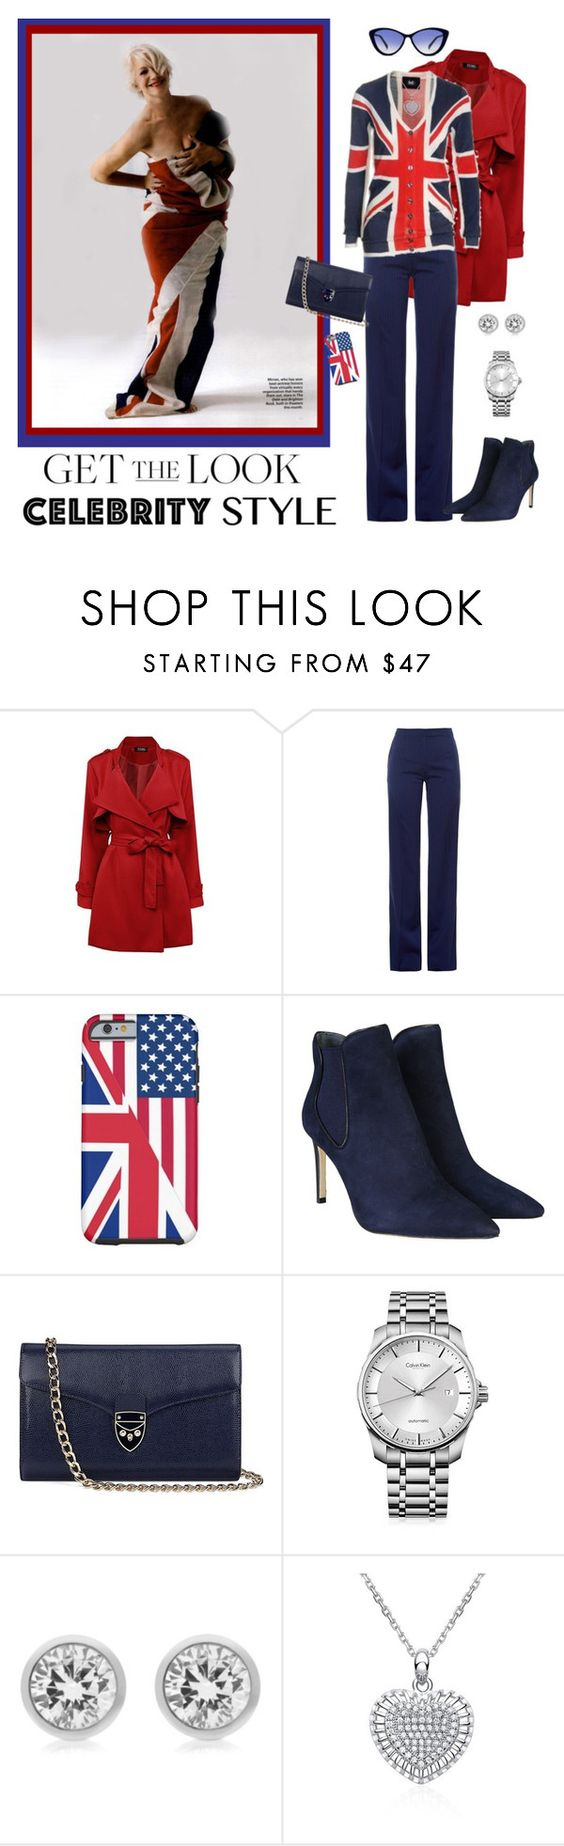 """""""Dame Helen Mirren"""" by krusie ❤ liked on Polyvore featuring Altuzarra, Tory Burch, Aspinal of London, Calvin Klein, Michael Kors, Italia Independent, women's clothing, women, female and woman"""